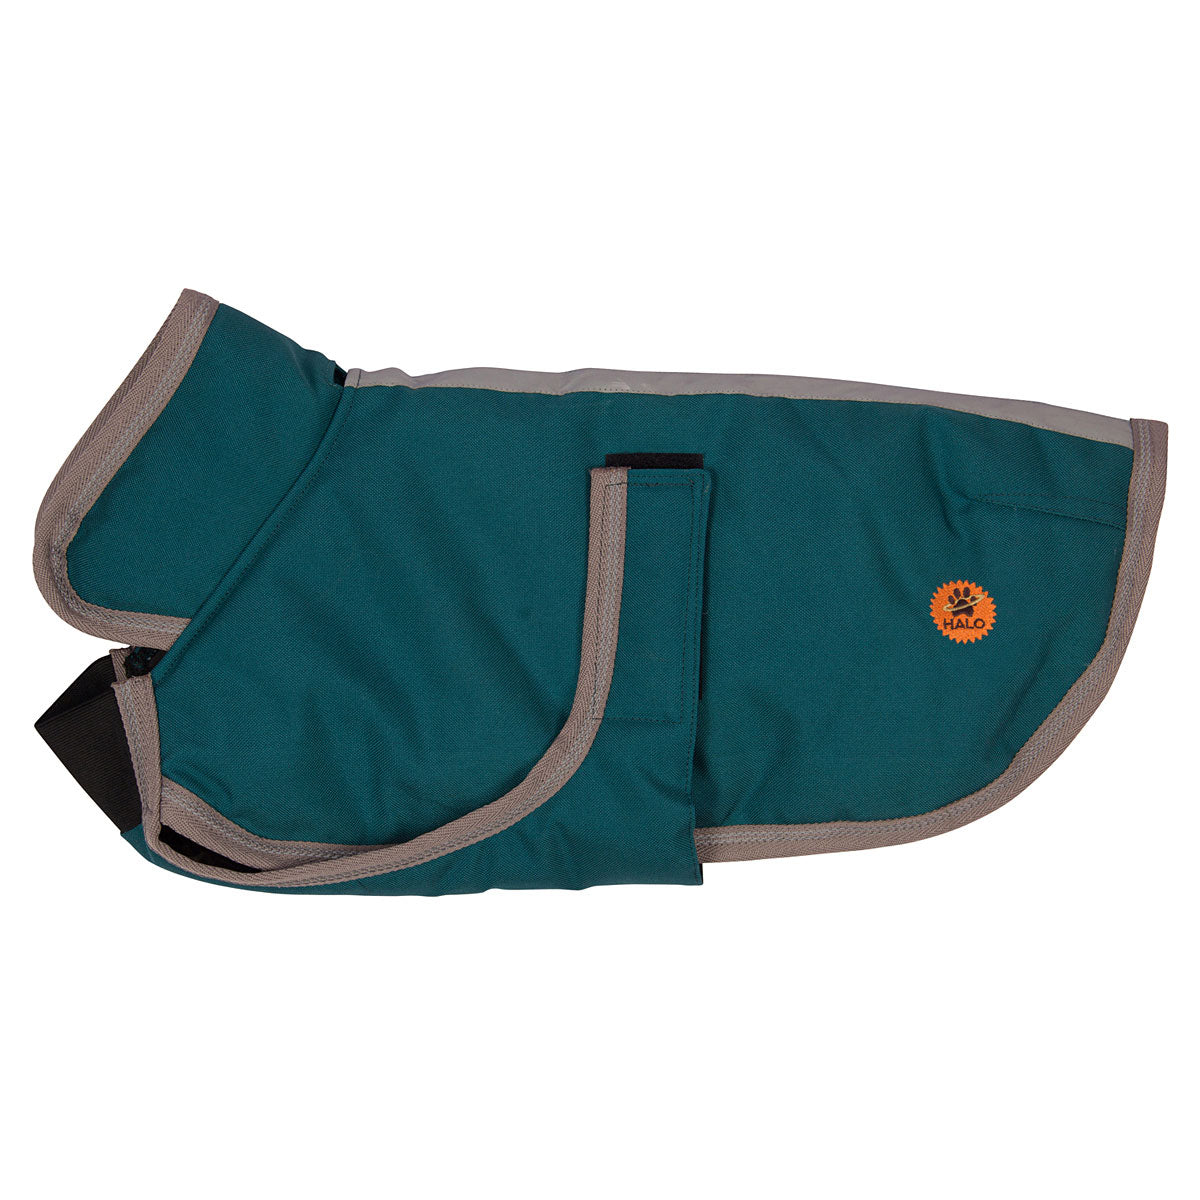 Halo Major Dog Coat with Collar_1554